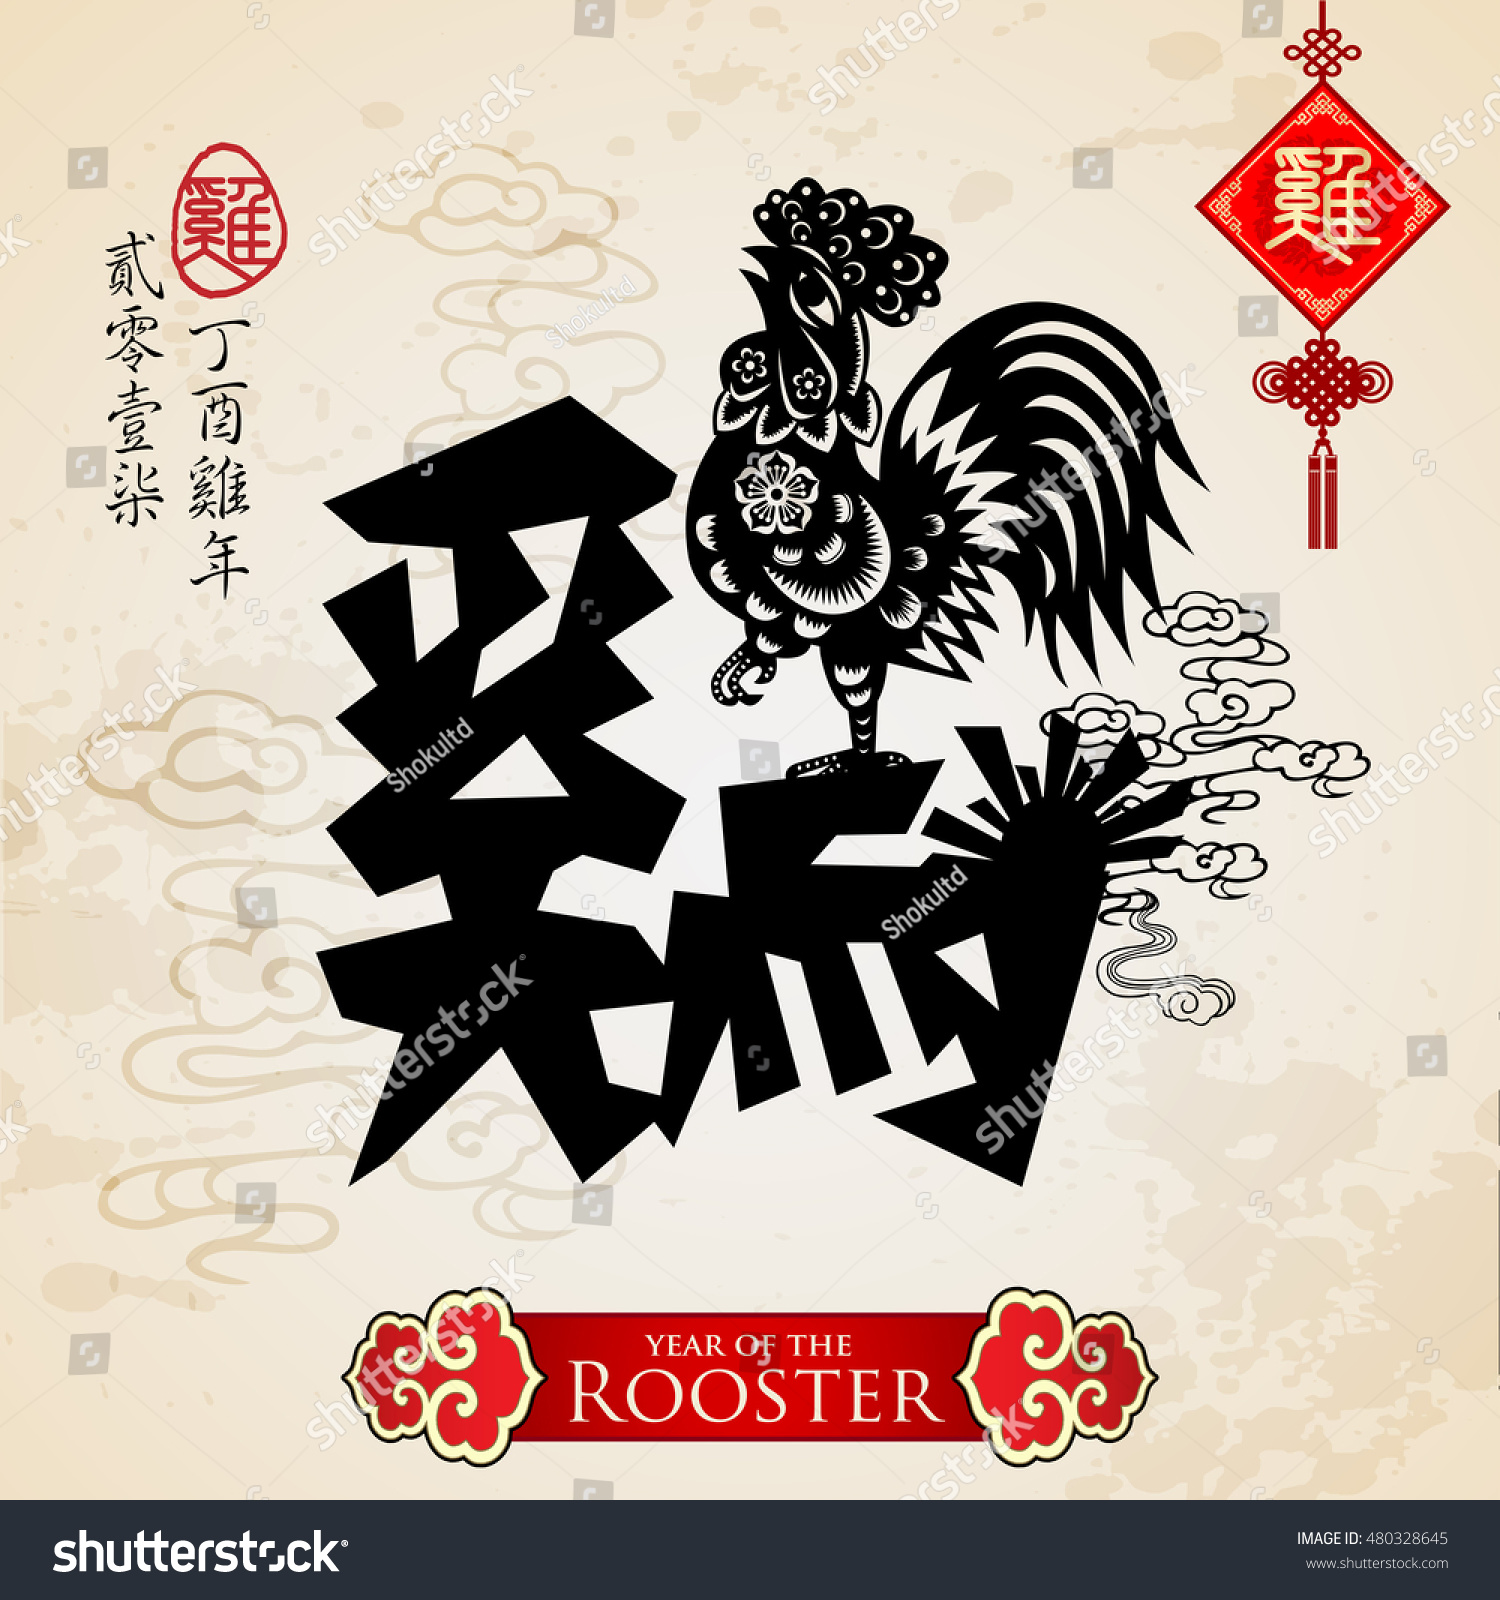 Chinese zodiac rooster calligraphy patterntranslation